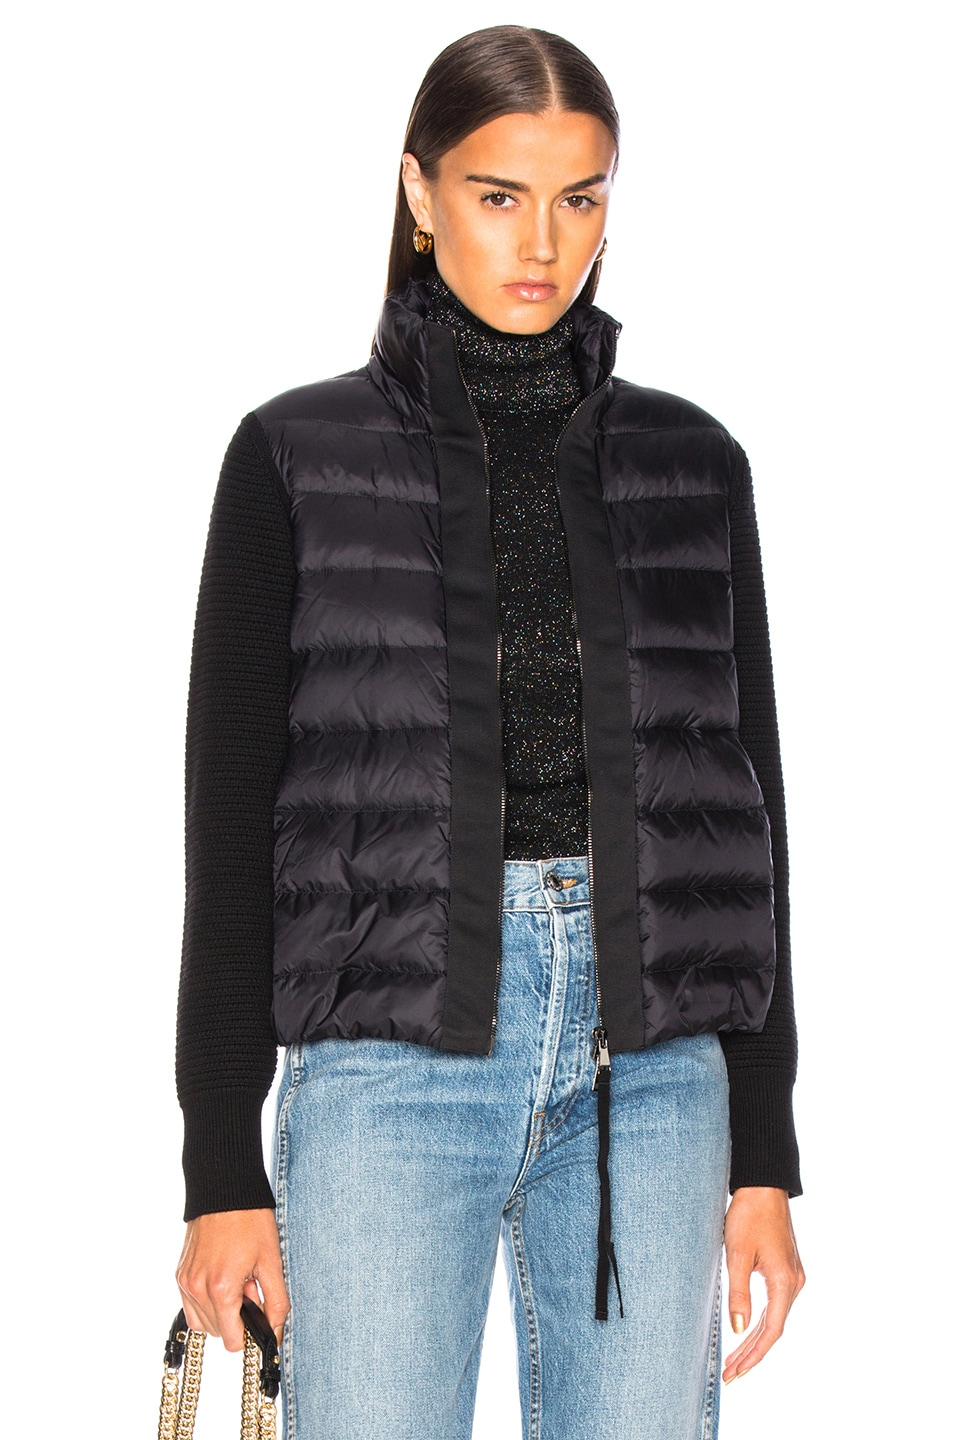 Image 1 of Moncler Maglione Tricot Cardigan in Black